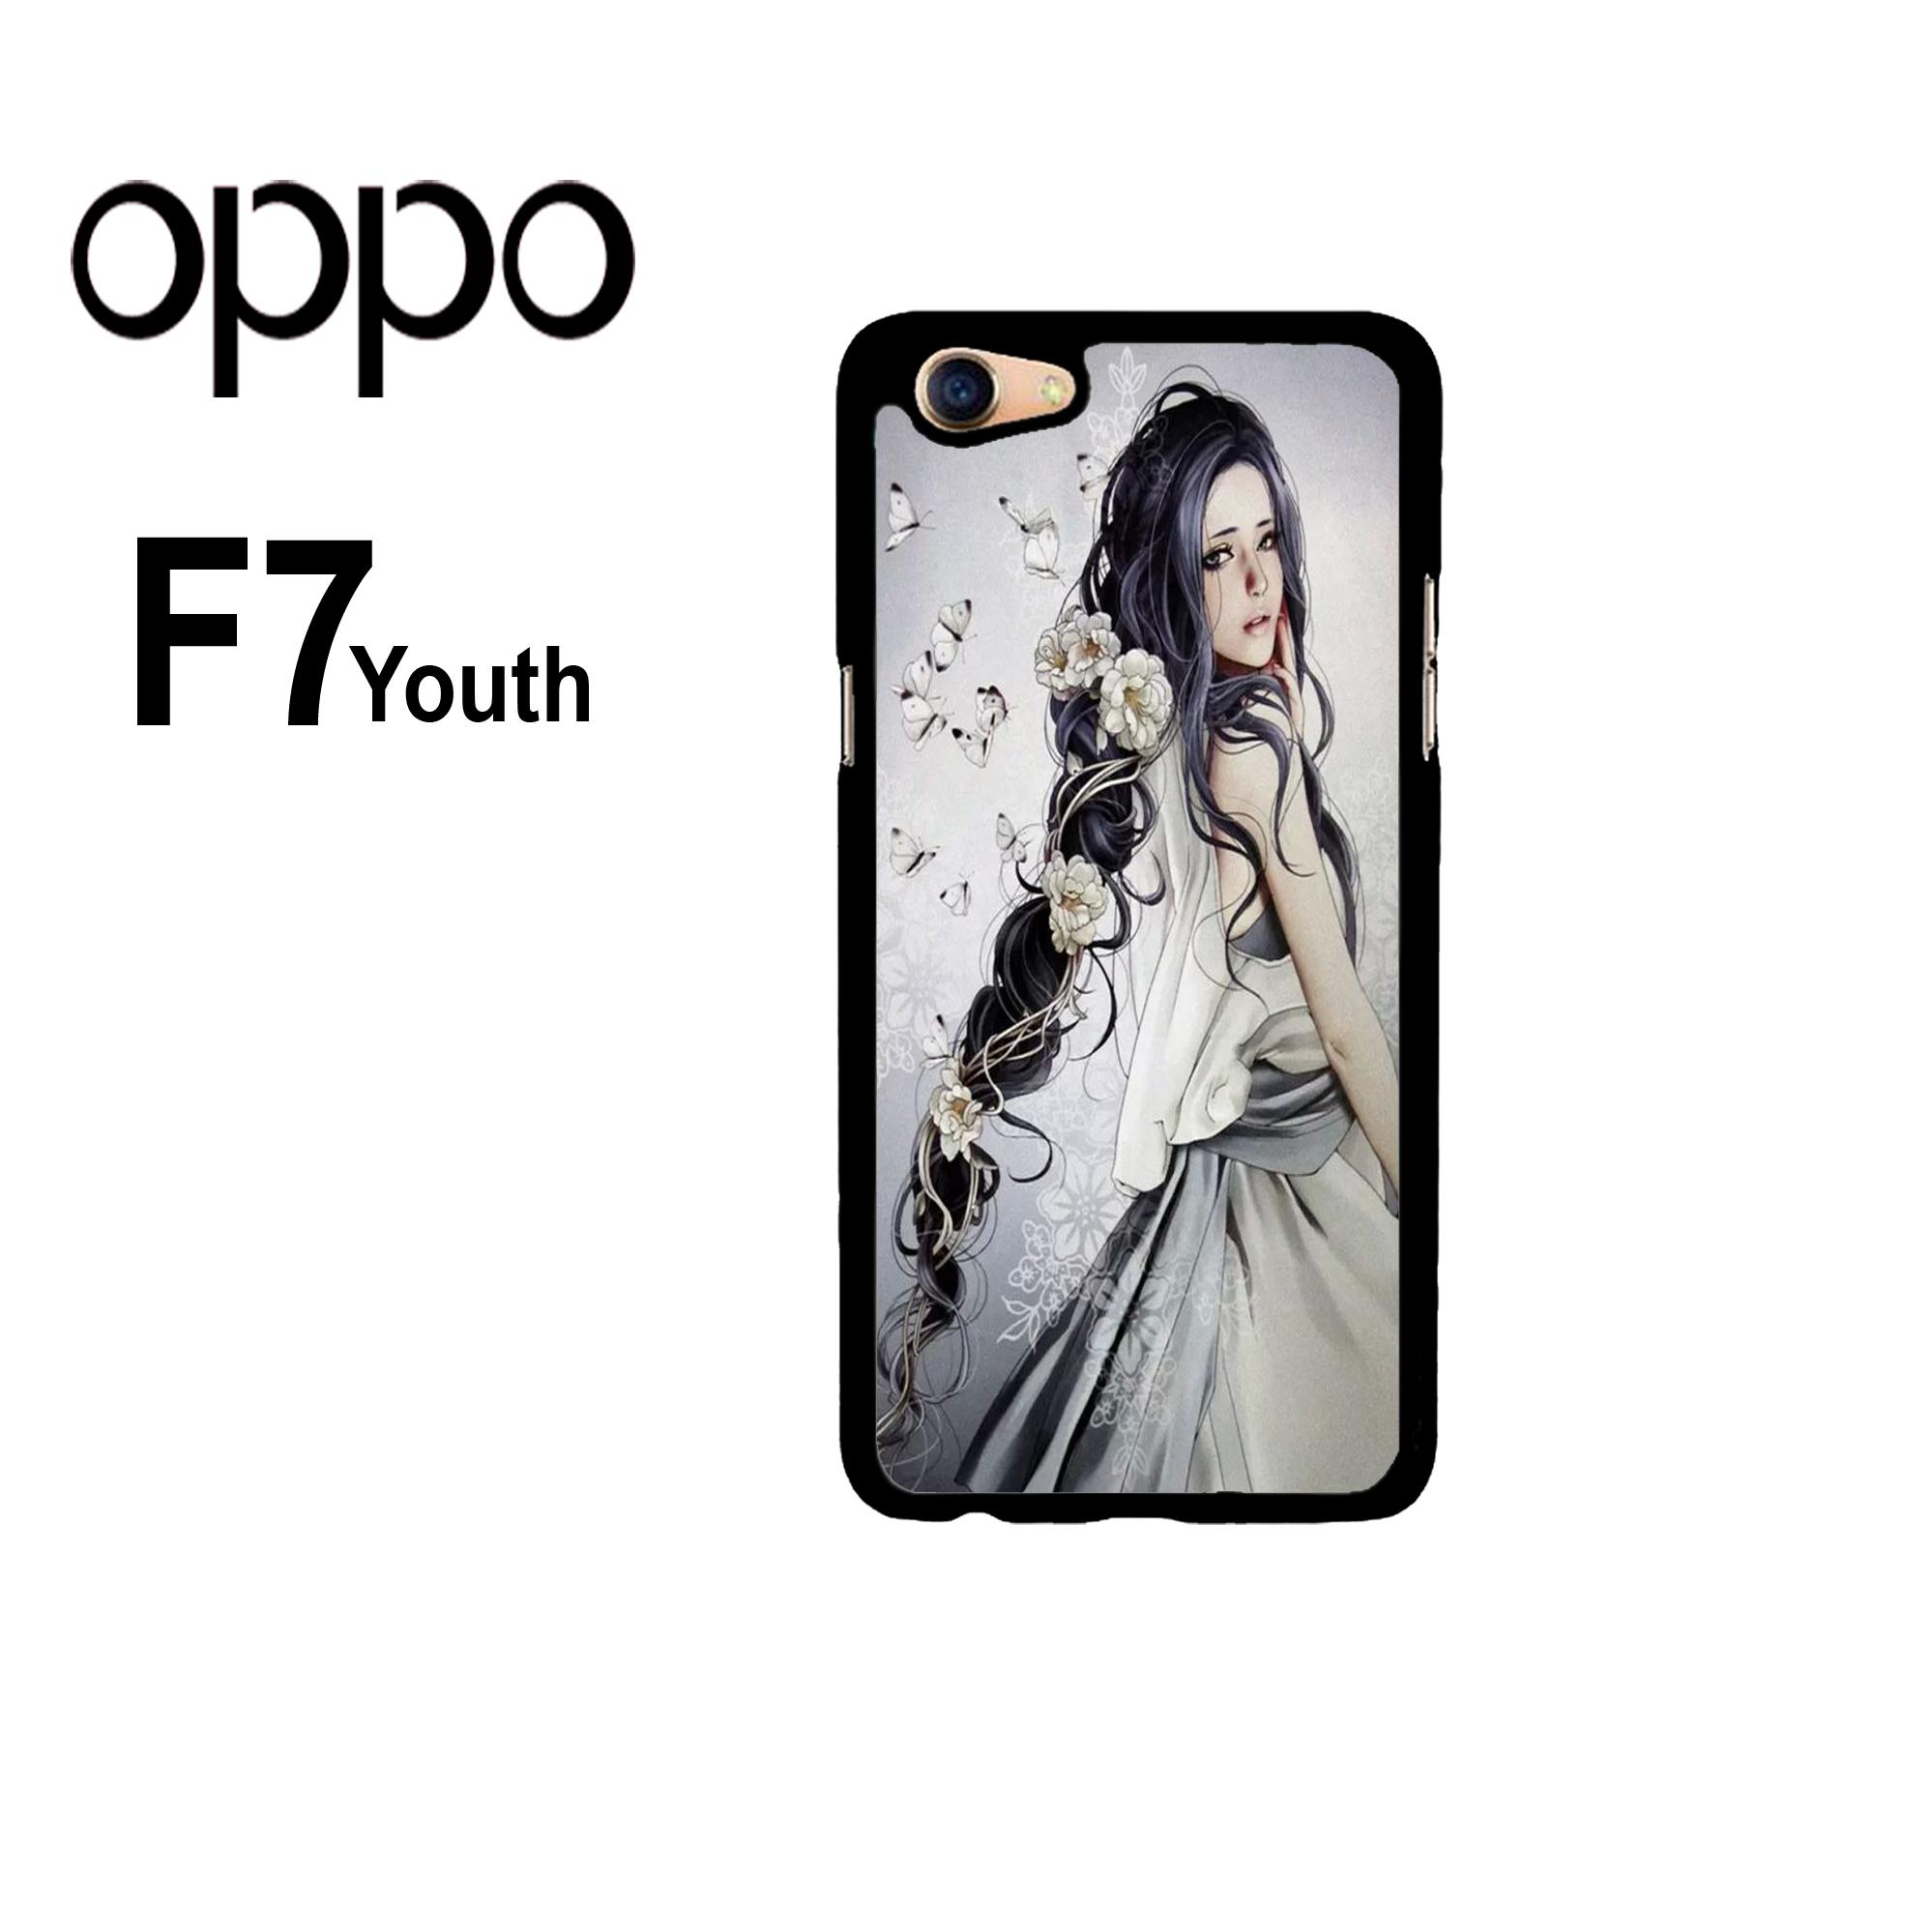 Rajamurah fashion printing case oppo f7 youth - 27